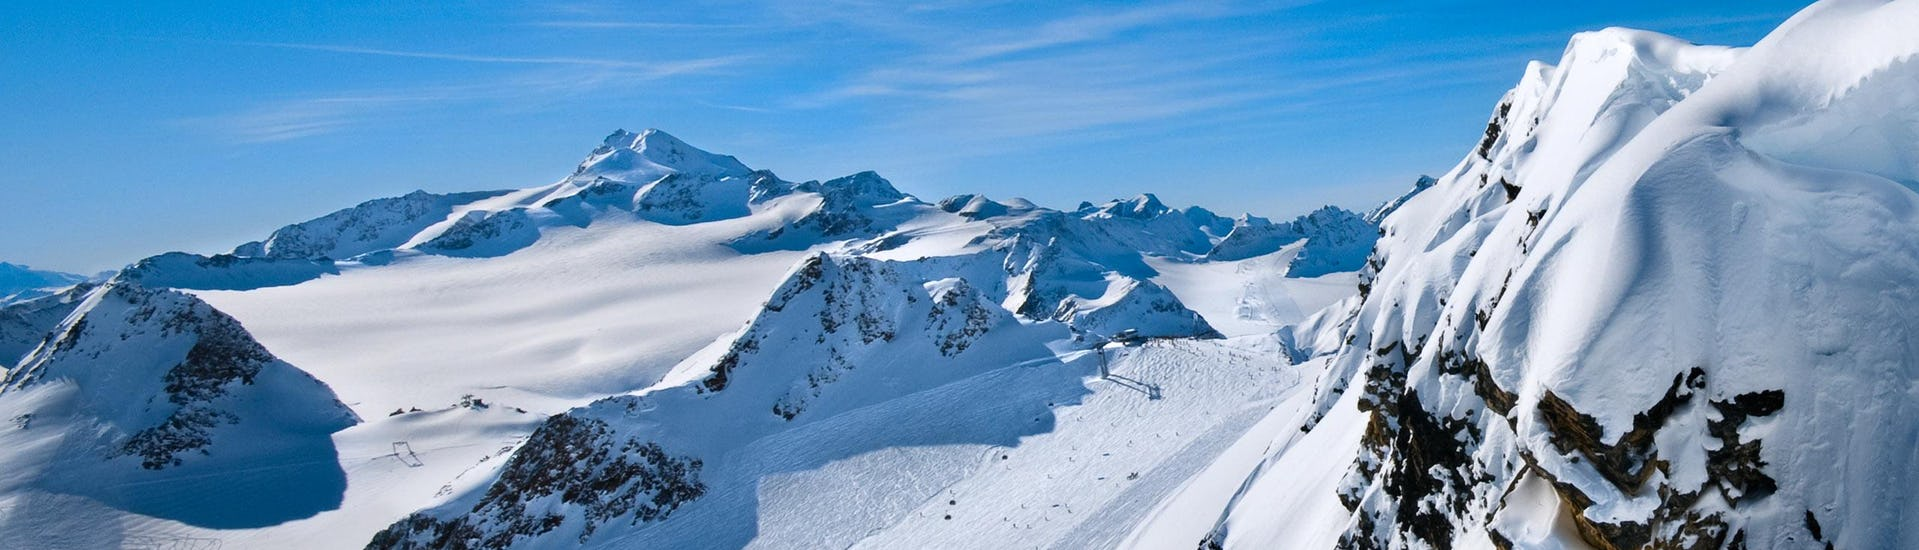 A view of a snowy mountain top in the ski resort of La Clusaz, where ski schools gather to start their ski lessons.